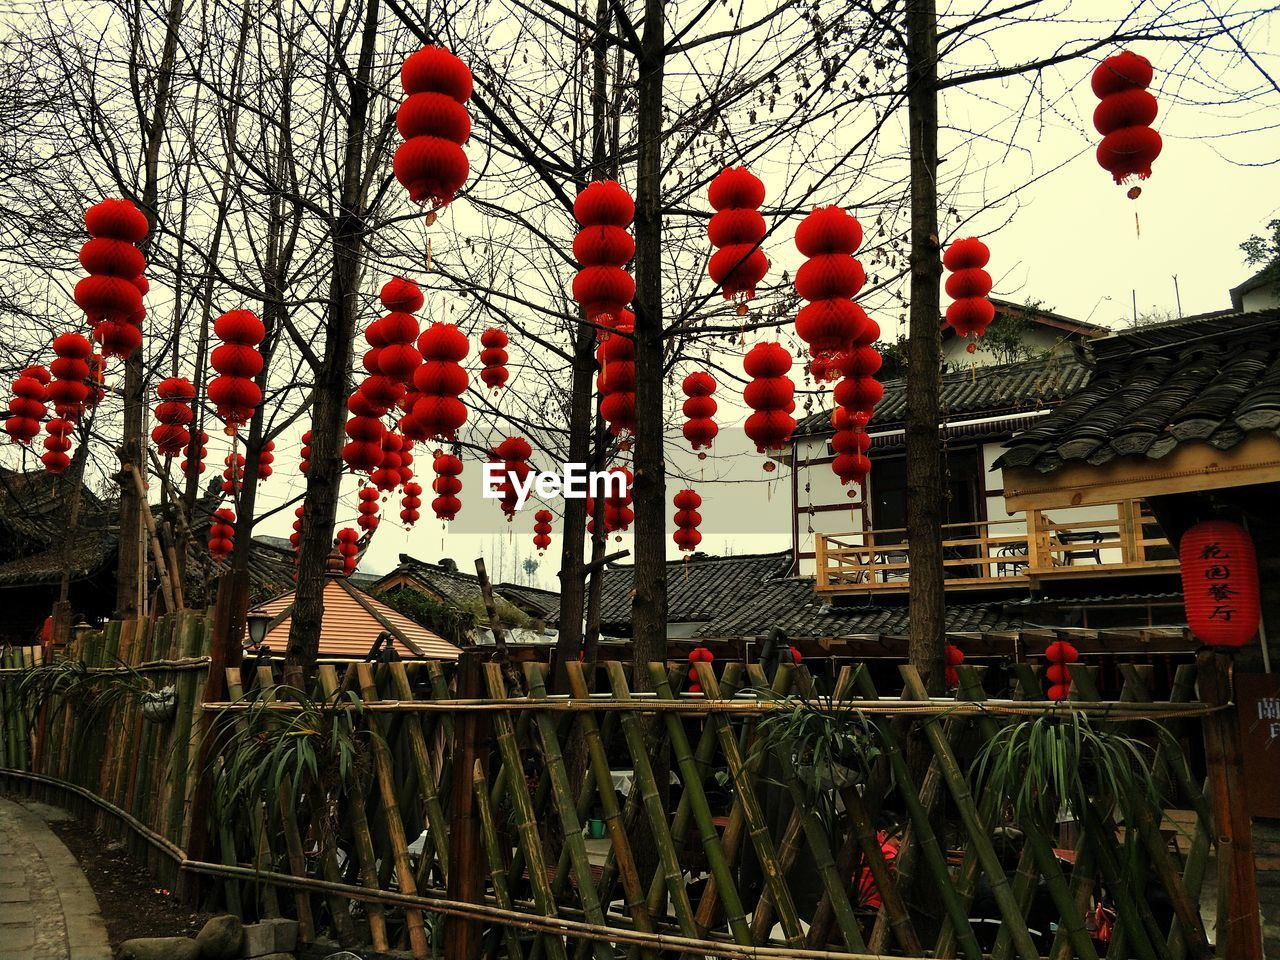 built structure, chinese lantern, building exterior, architecture, hanging, lantern, low angle view, outdoors, red, paper lantern, chinese new year, day, chinese lantern festival, no people, city, tree, sky